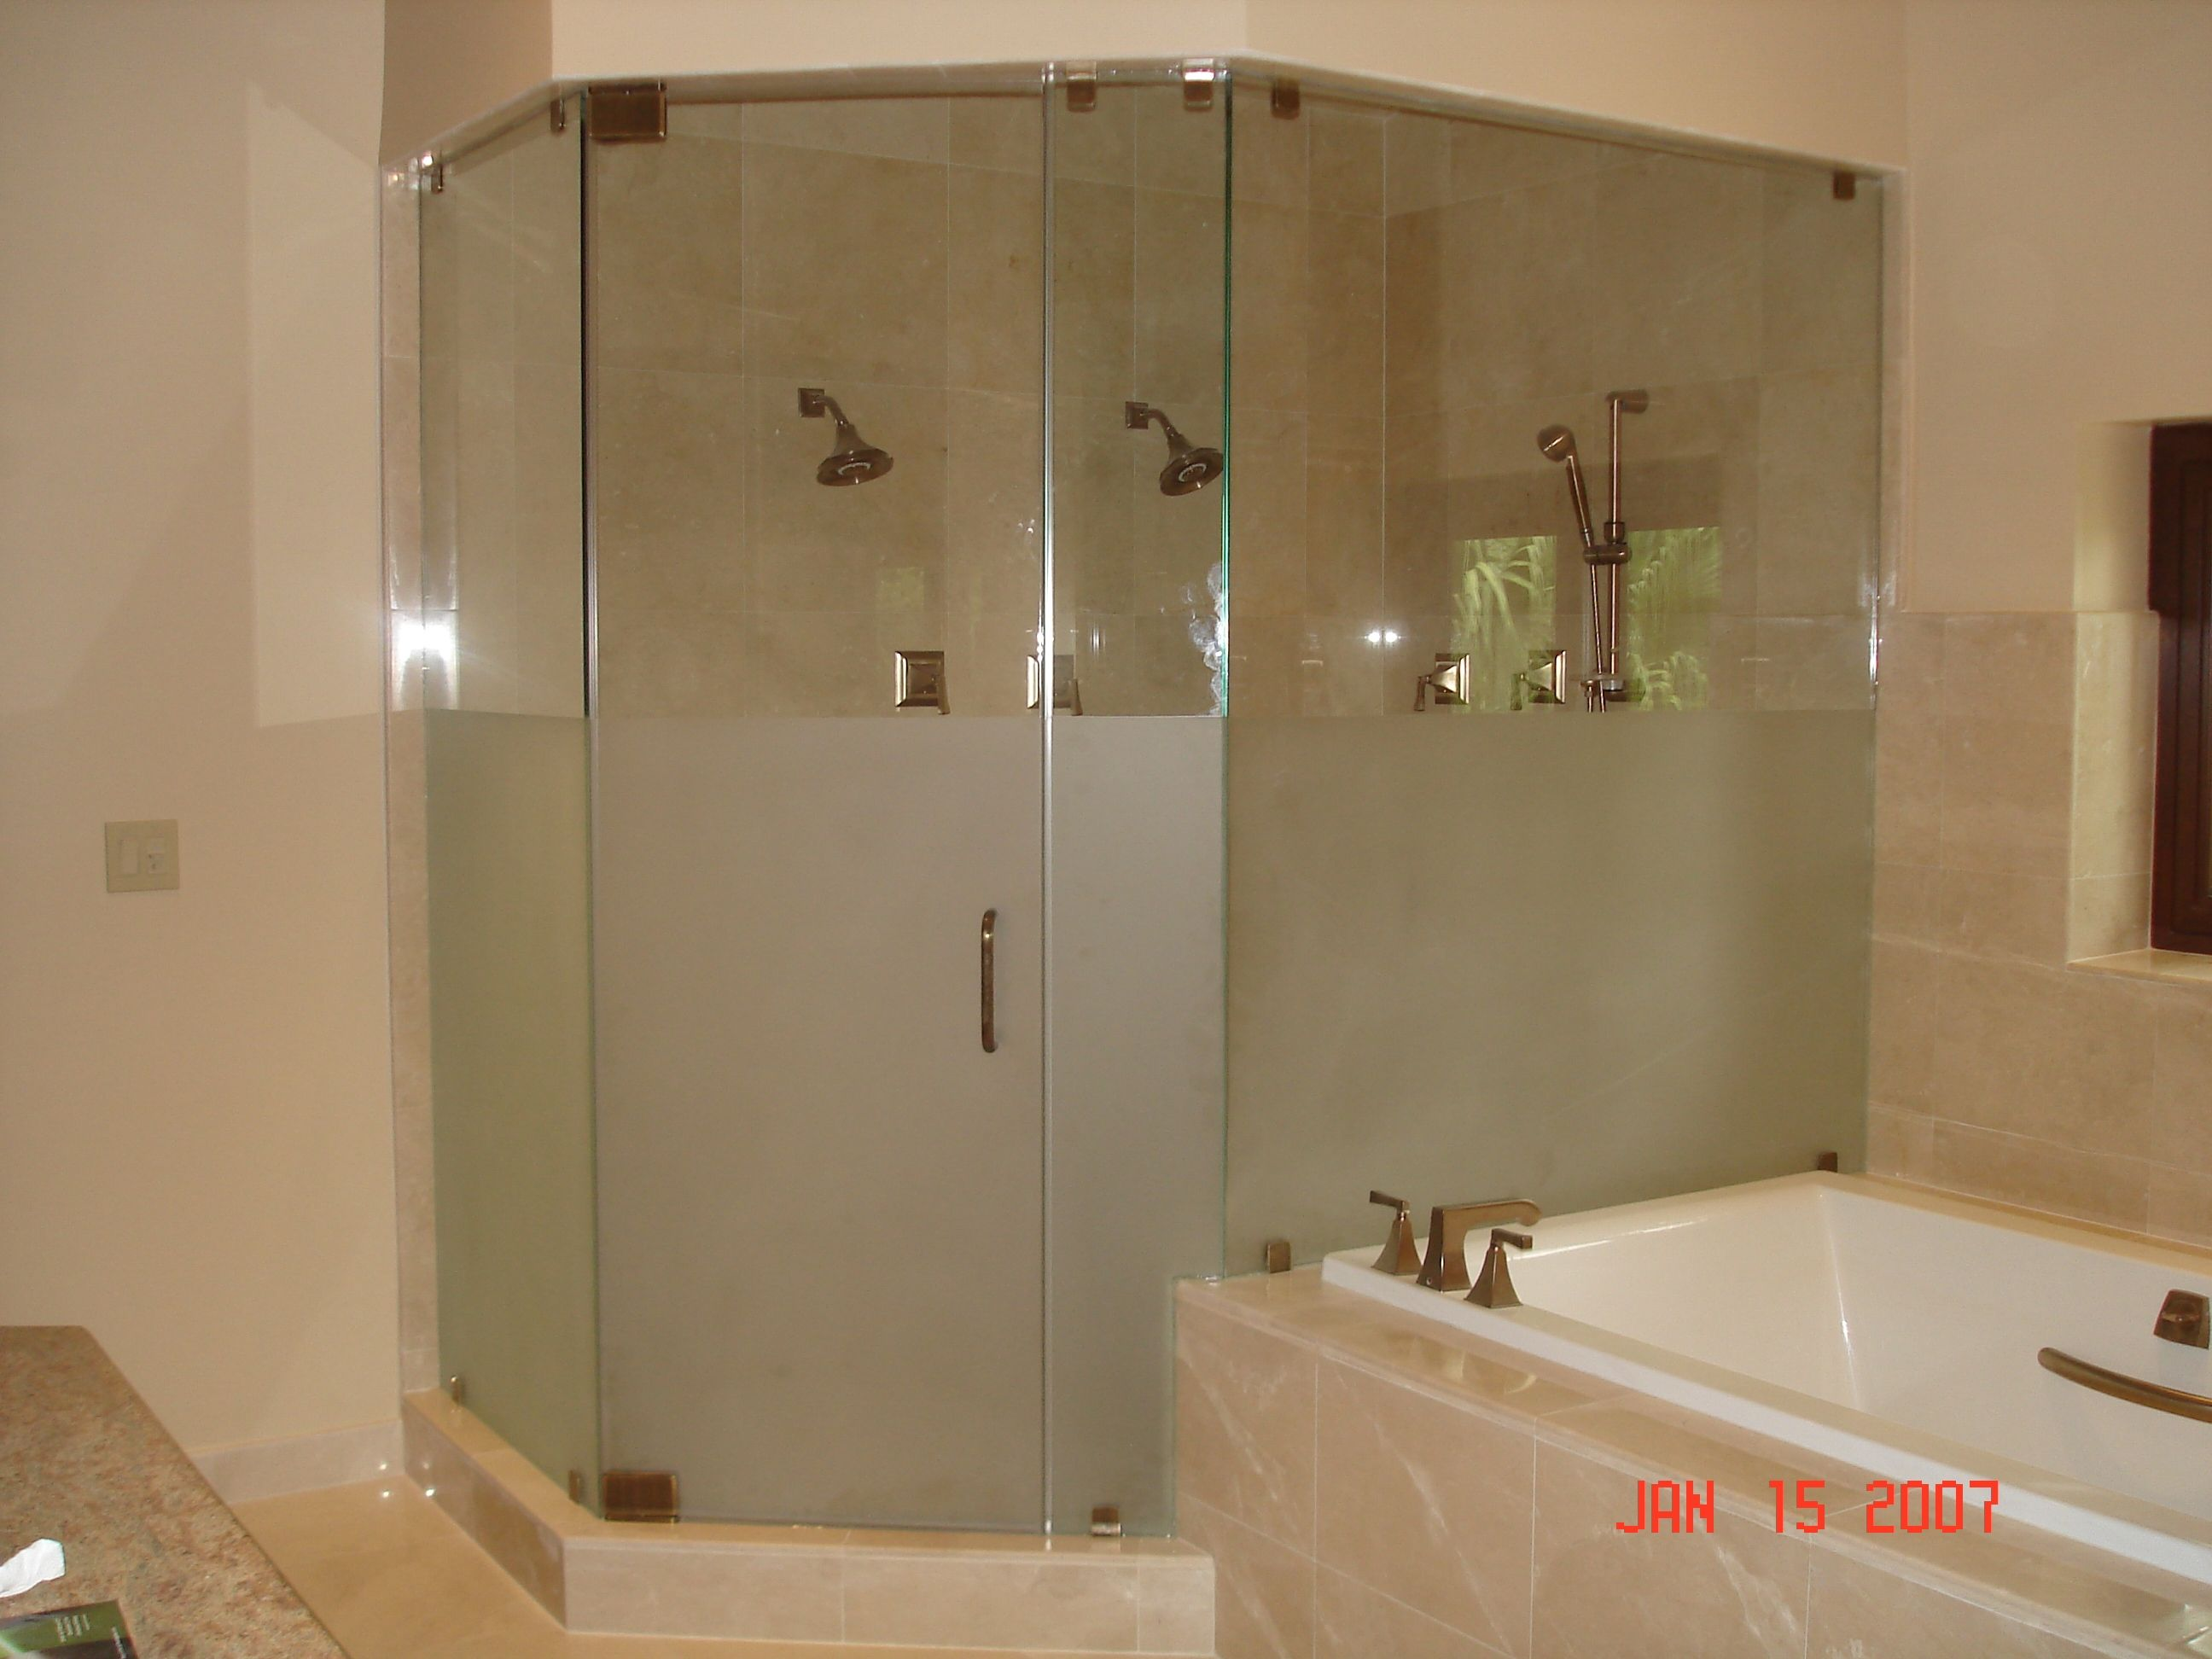 Frosted Shower Doors Vs Clear In 2019 Glass Shower Doors